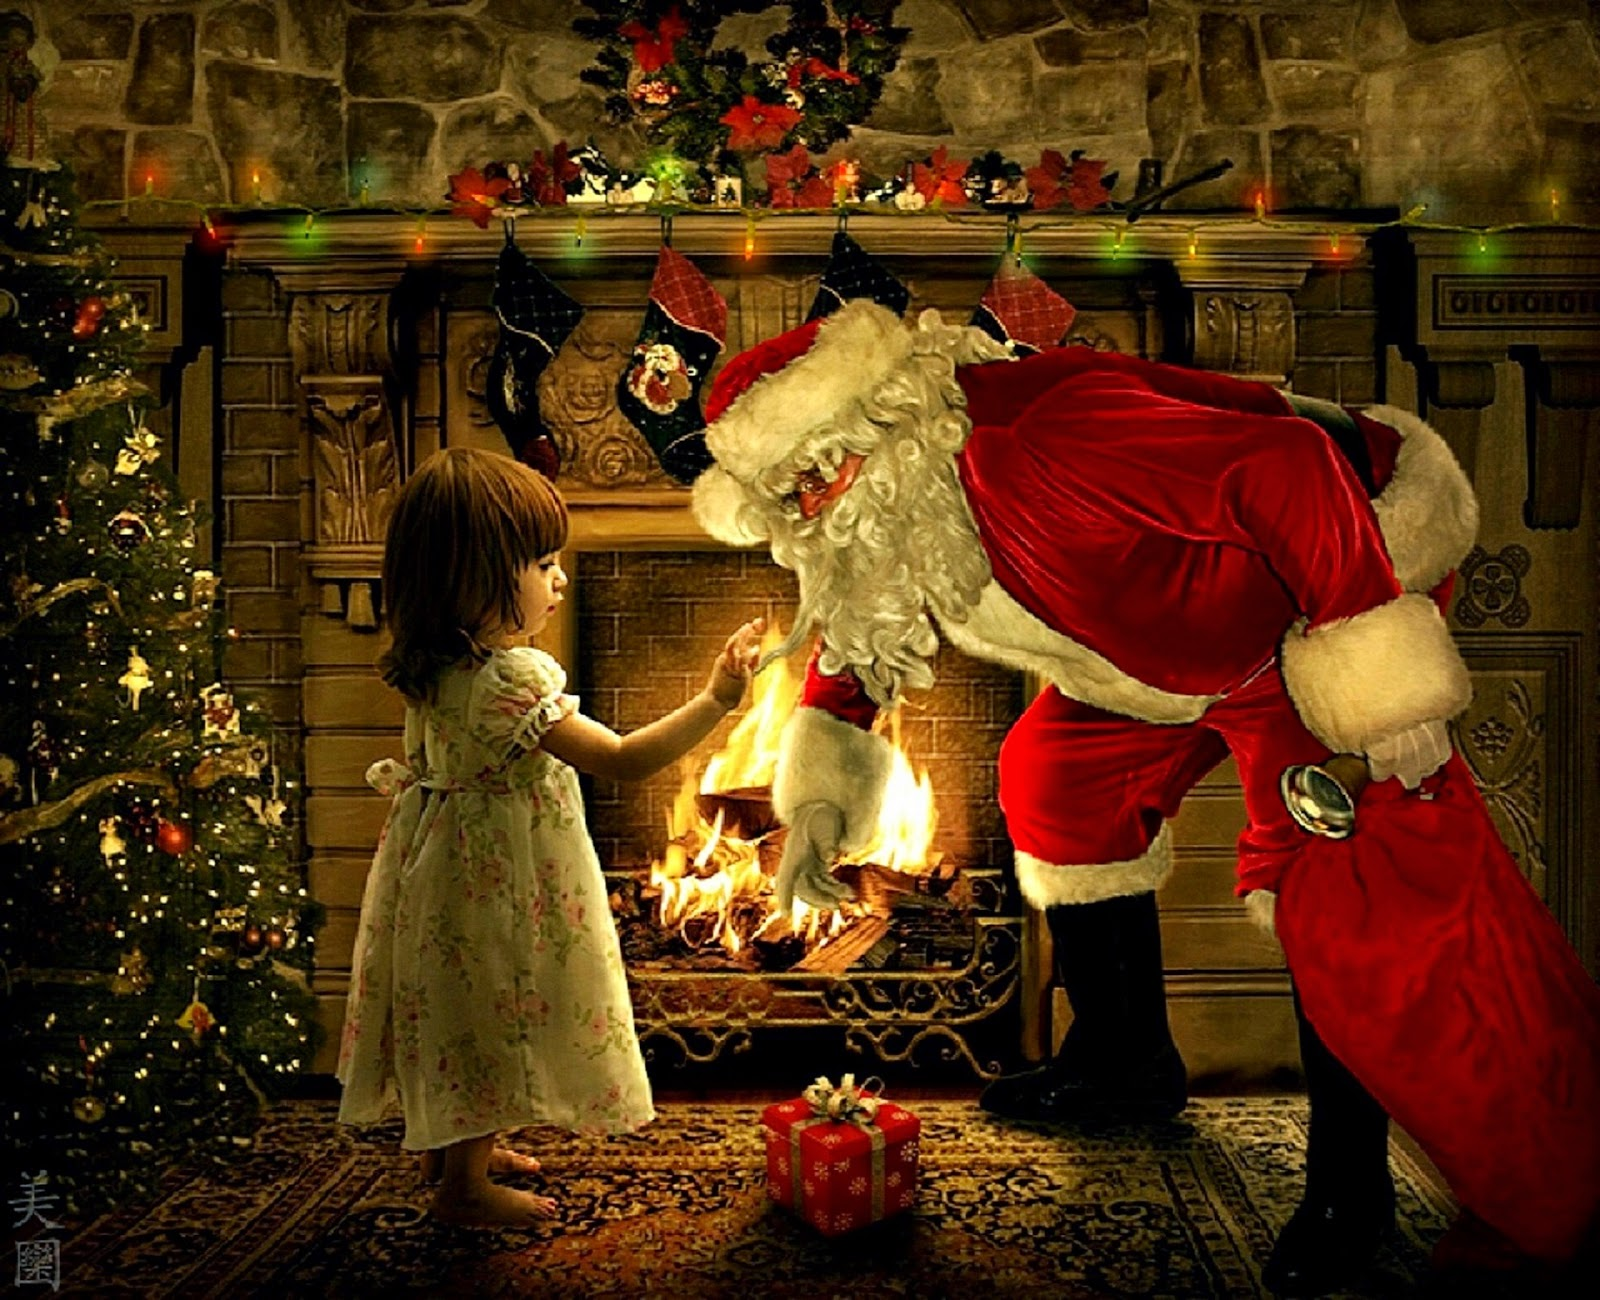 Santa-presents-Christmas-gifts-to-girl-kid-image-picture-1920x1560.jpg